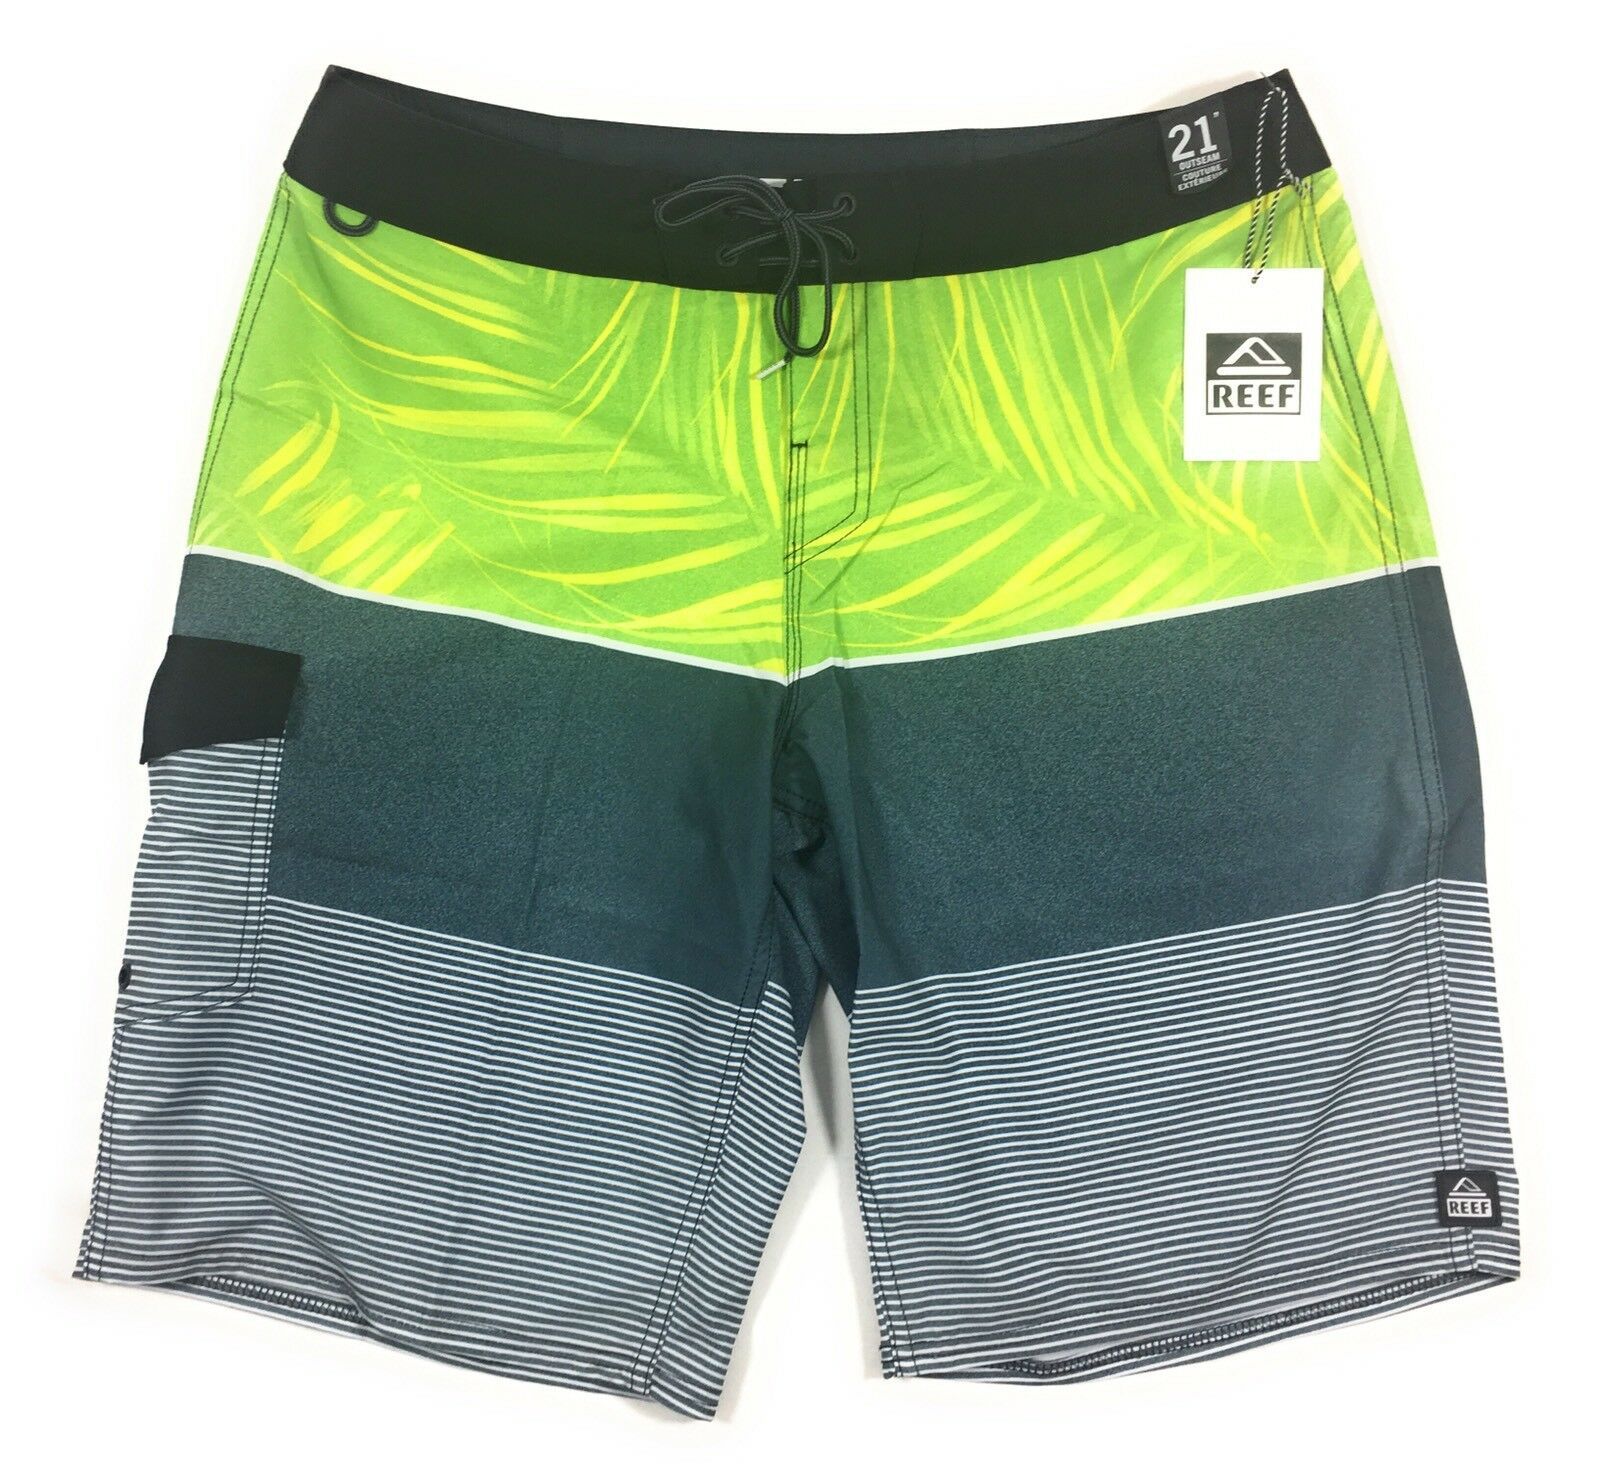 a75f63a0d5 21 Men's 36 Green Board Shorts Swim Suit Reef Express ndpify3787 ...